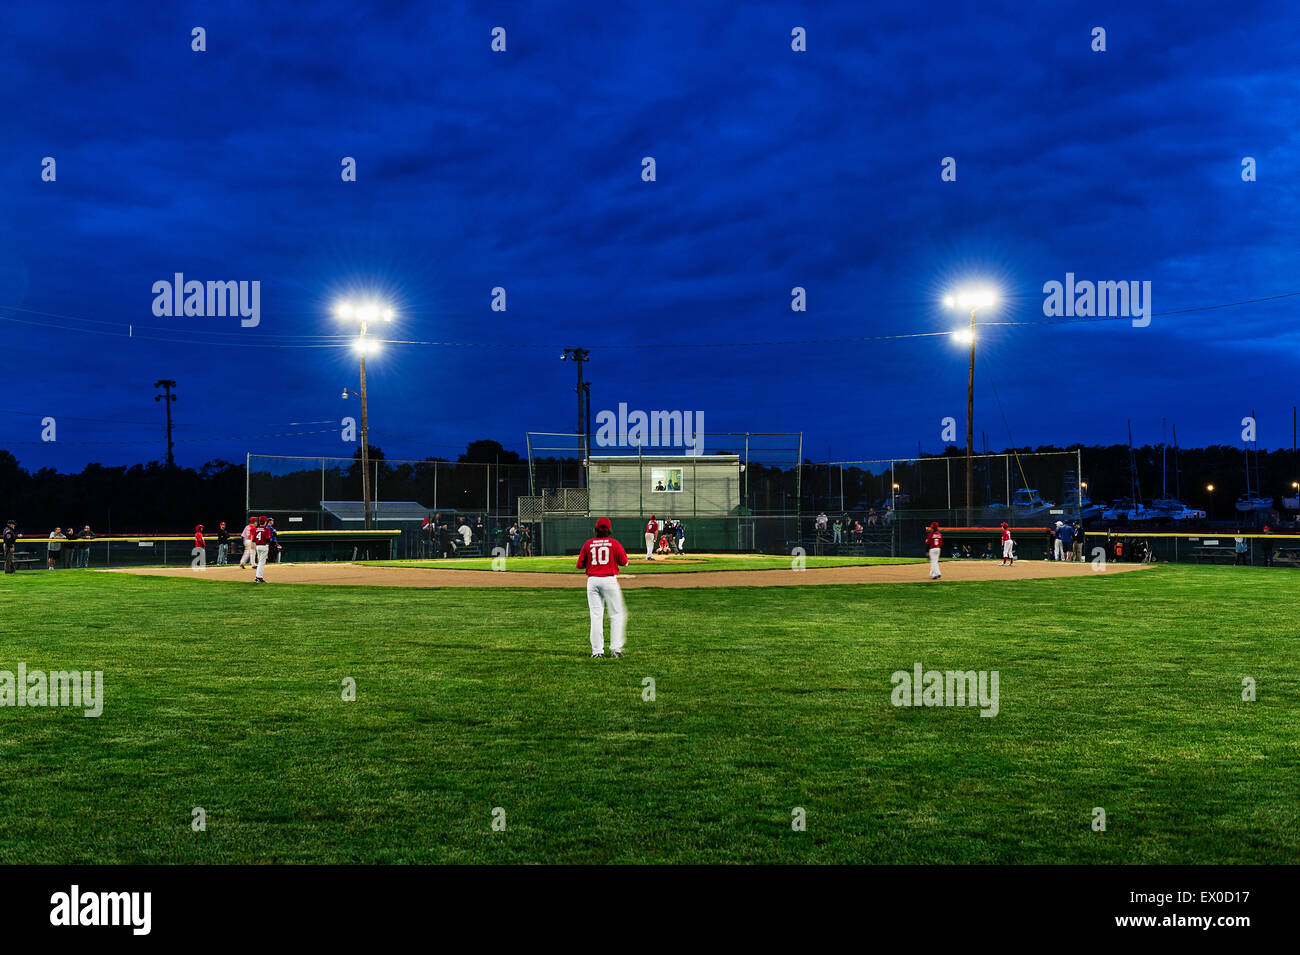 Little League baseball game at night. - Stock Image